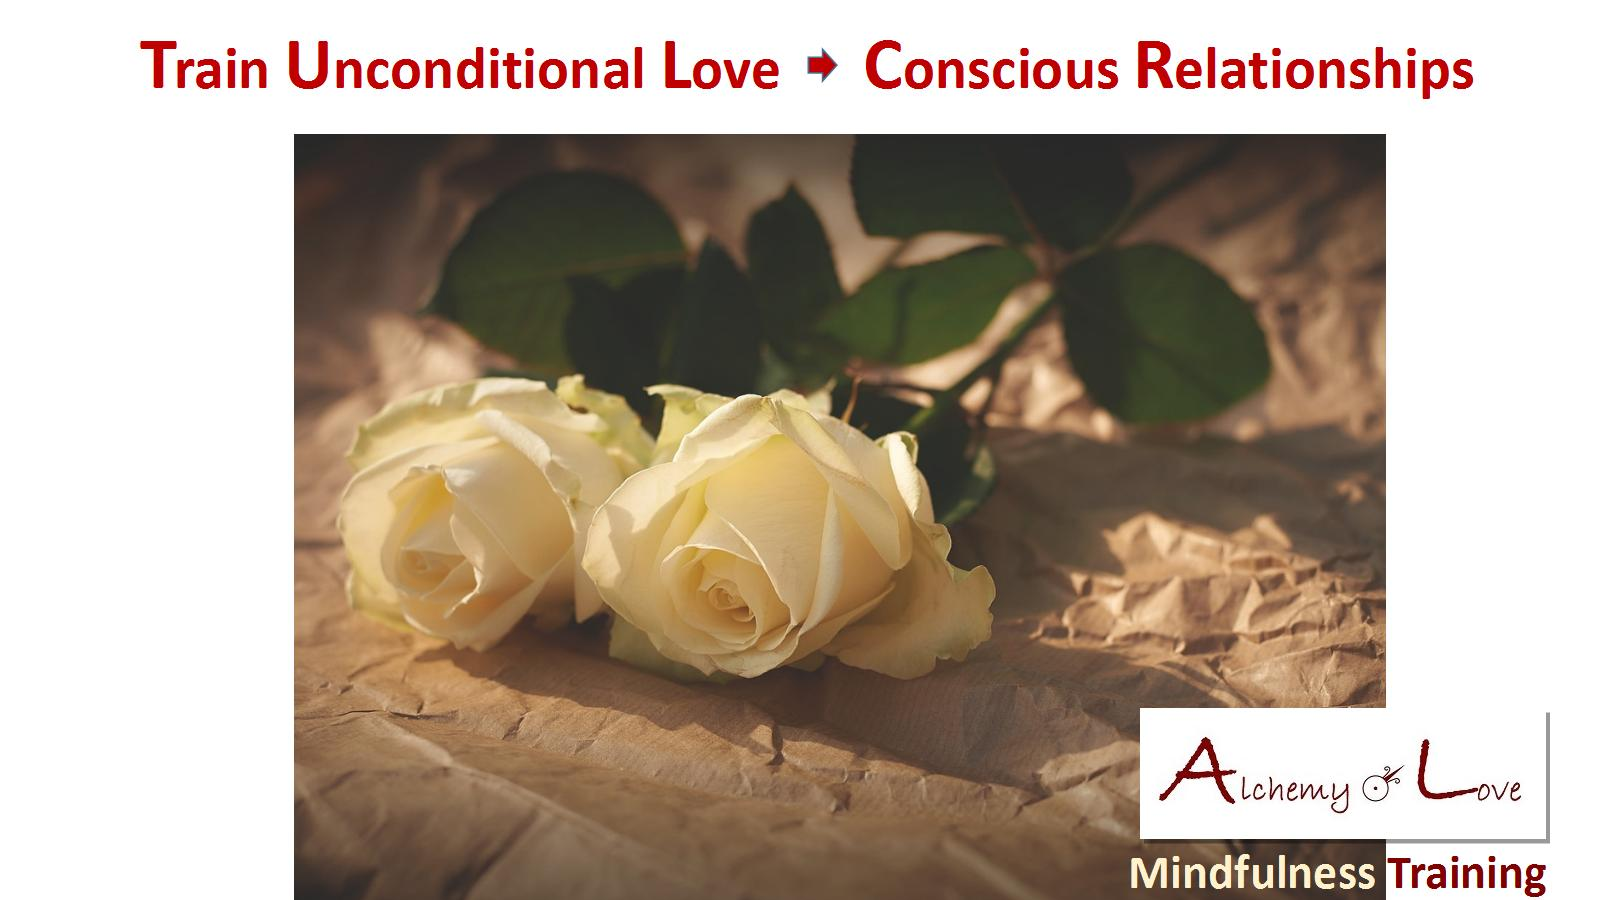 mindfulness gift: train unconditional love